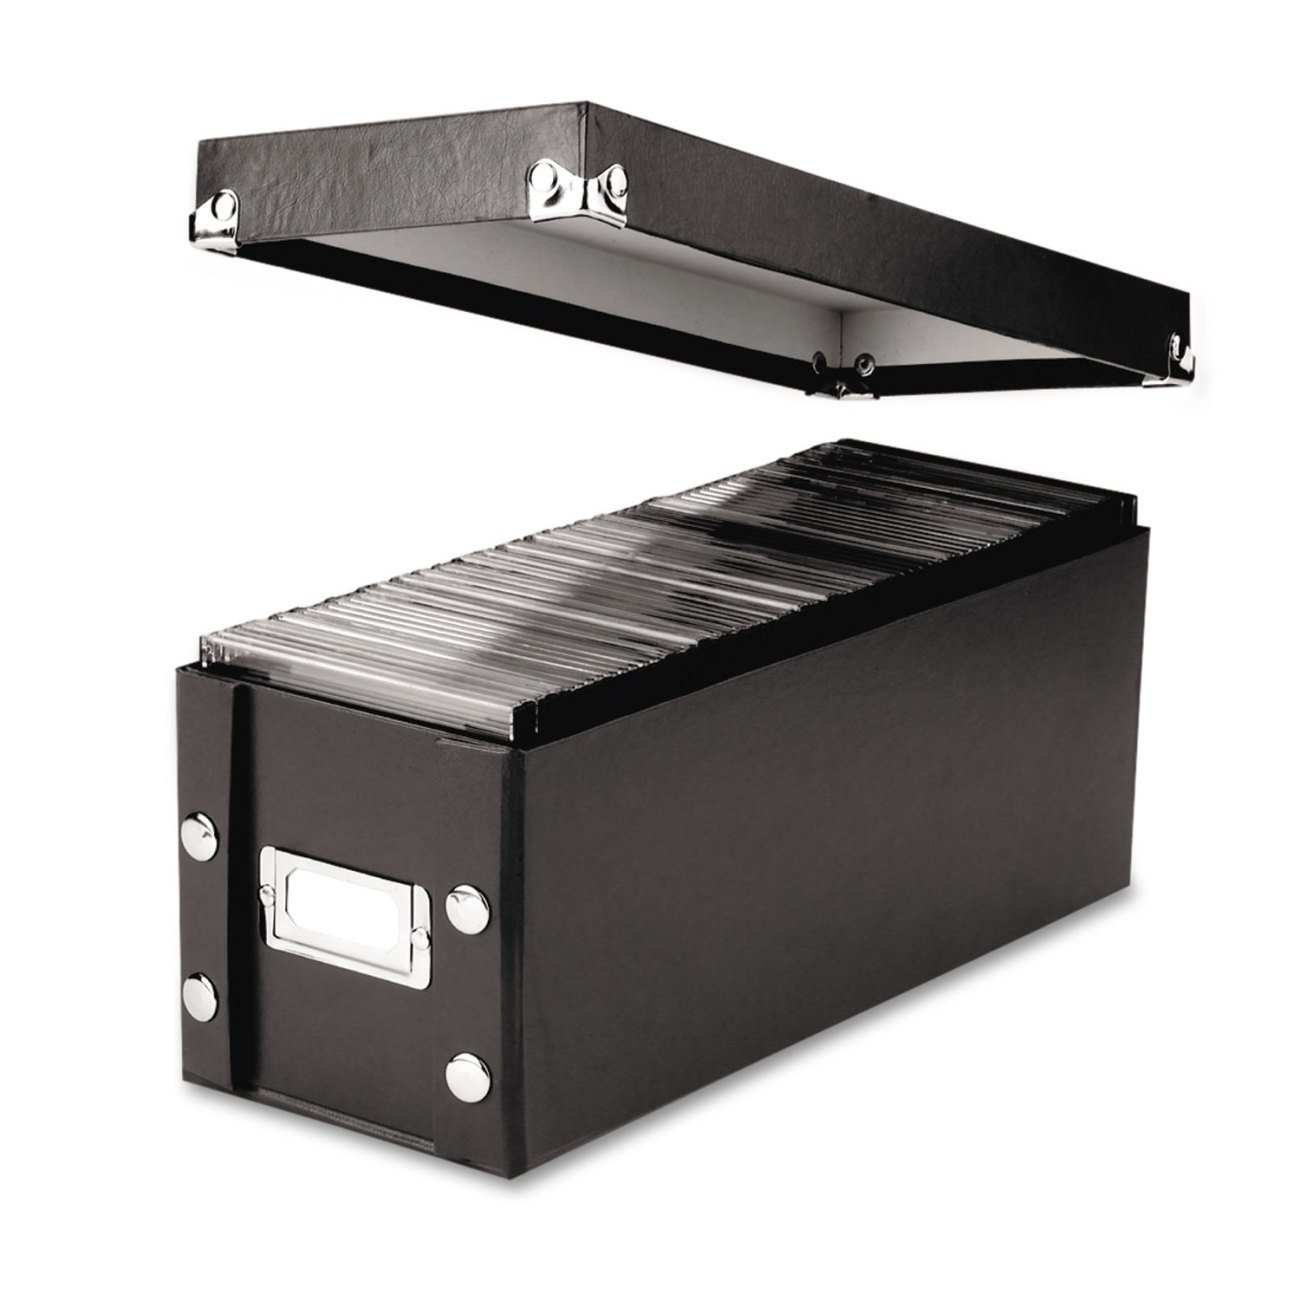 CD Storage Box, 13.25 x 5.125 x 5.125 Inches, Black (SNS01521), Holds 30 CDs in full jewel cases, 60 CDs in slim cases, and 165 discs in CD sleeves By Snap-N-Store,USA